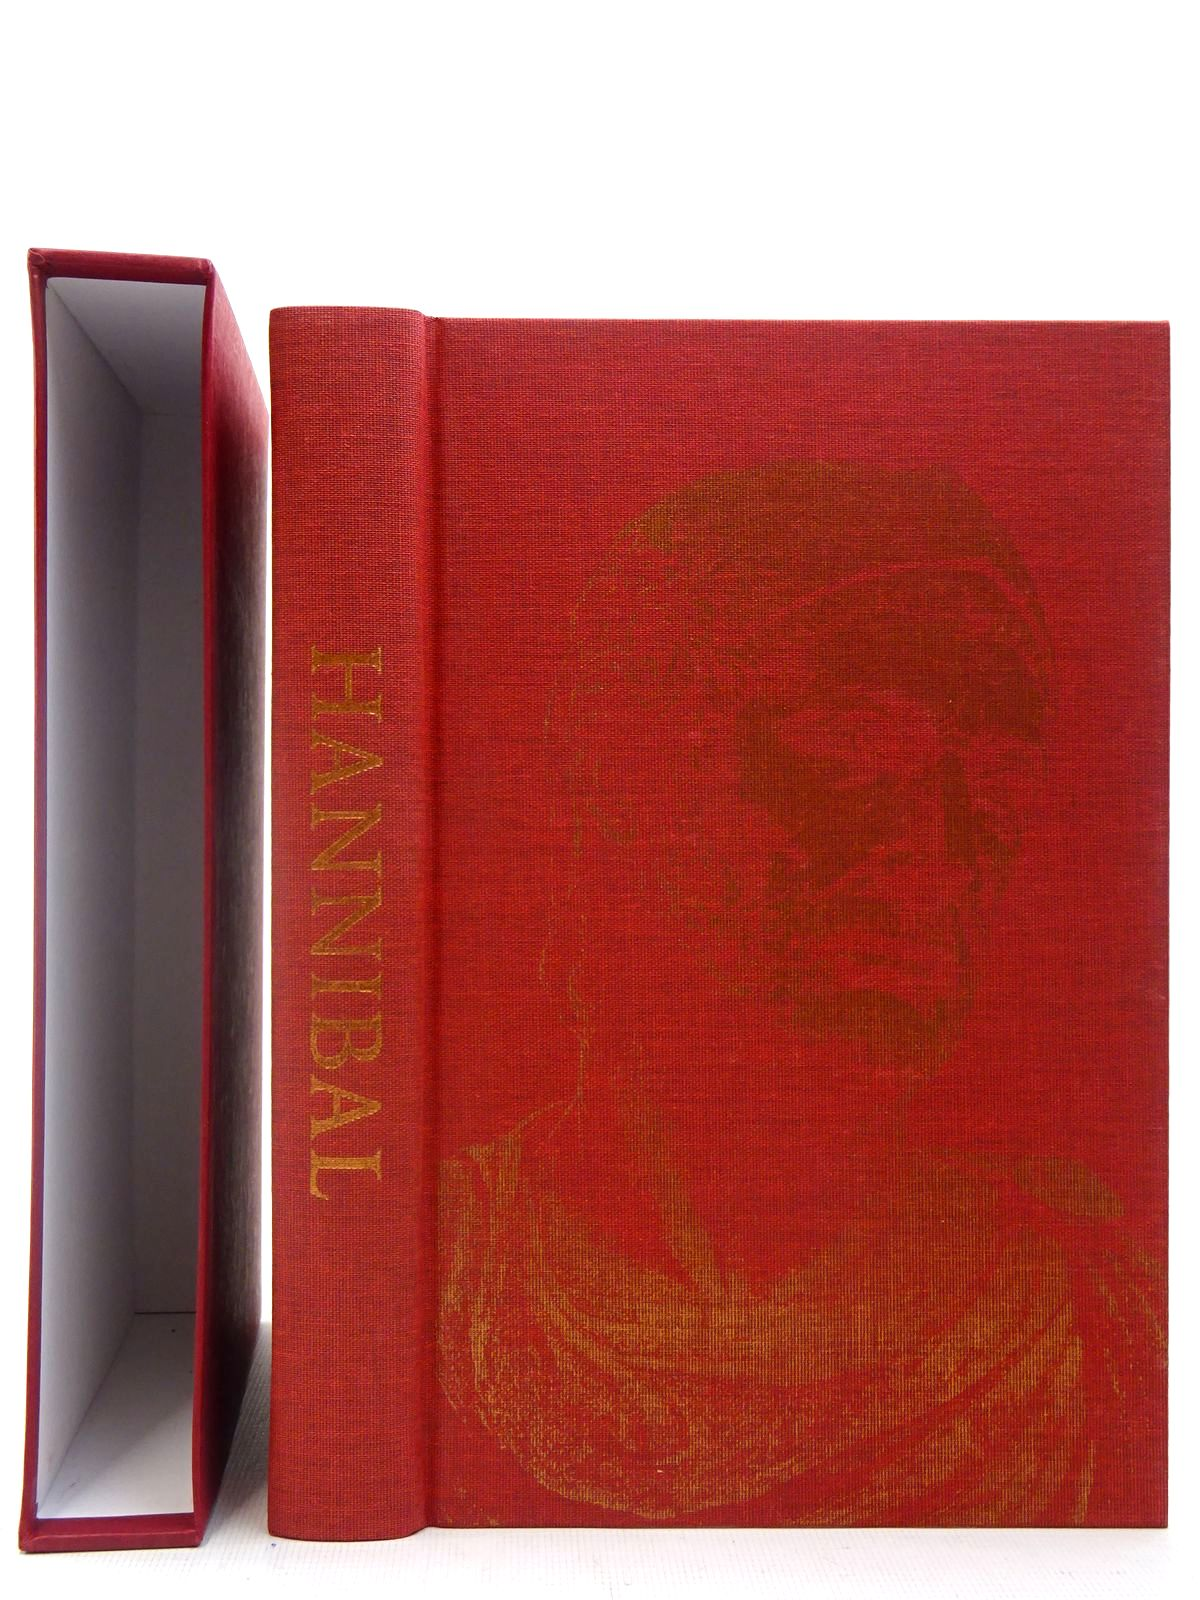 Photo of HANNIBAL written by Bradford, Ernle published by Folio Society (STOCK CODE: 2127158)  for sale by Stella & Rose's Books